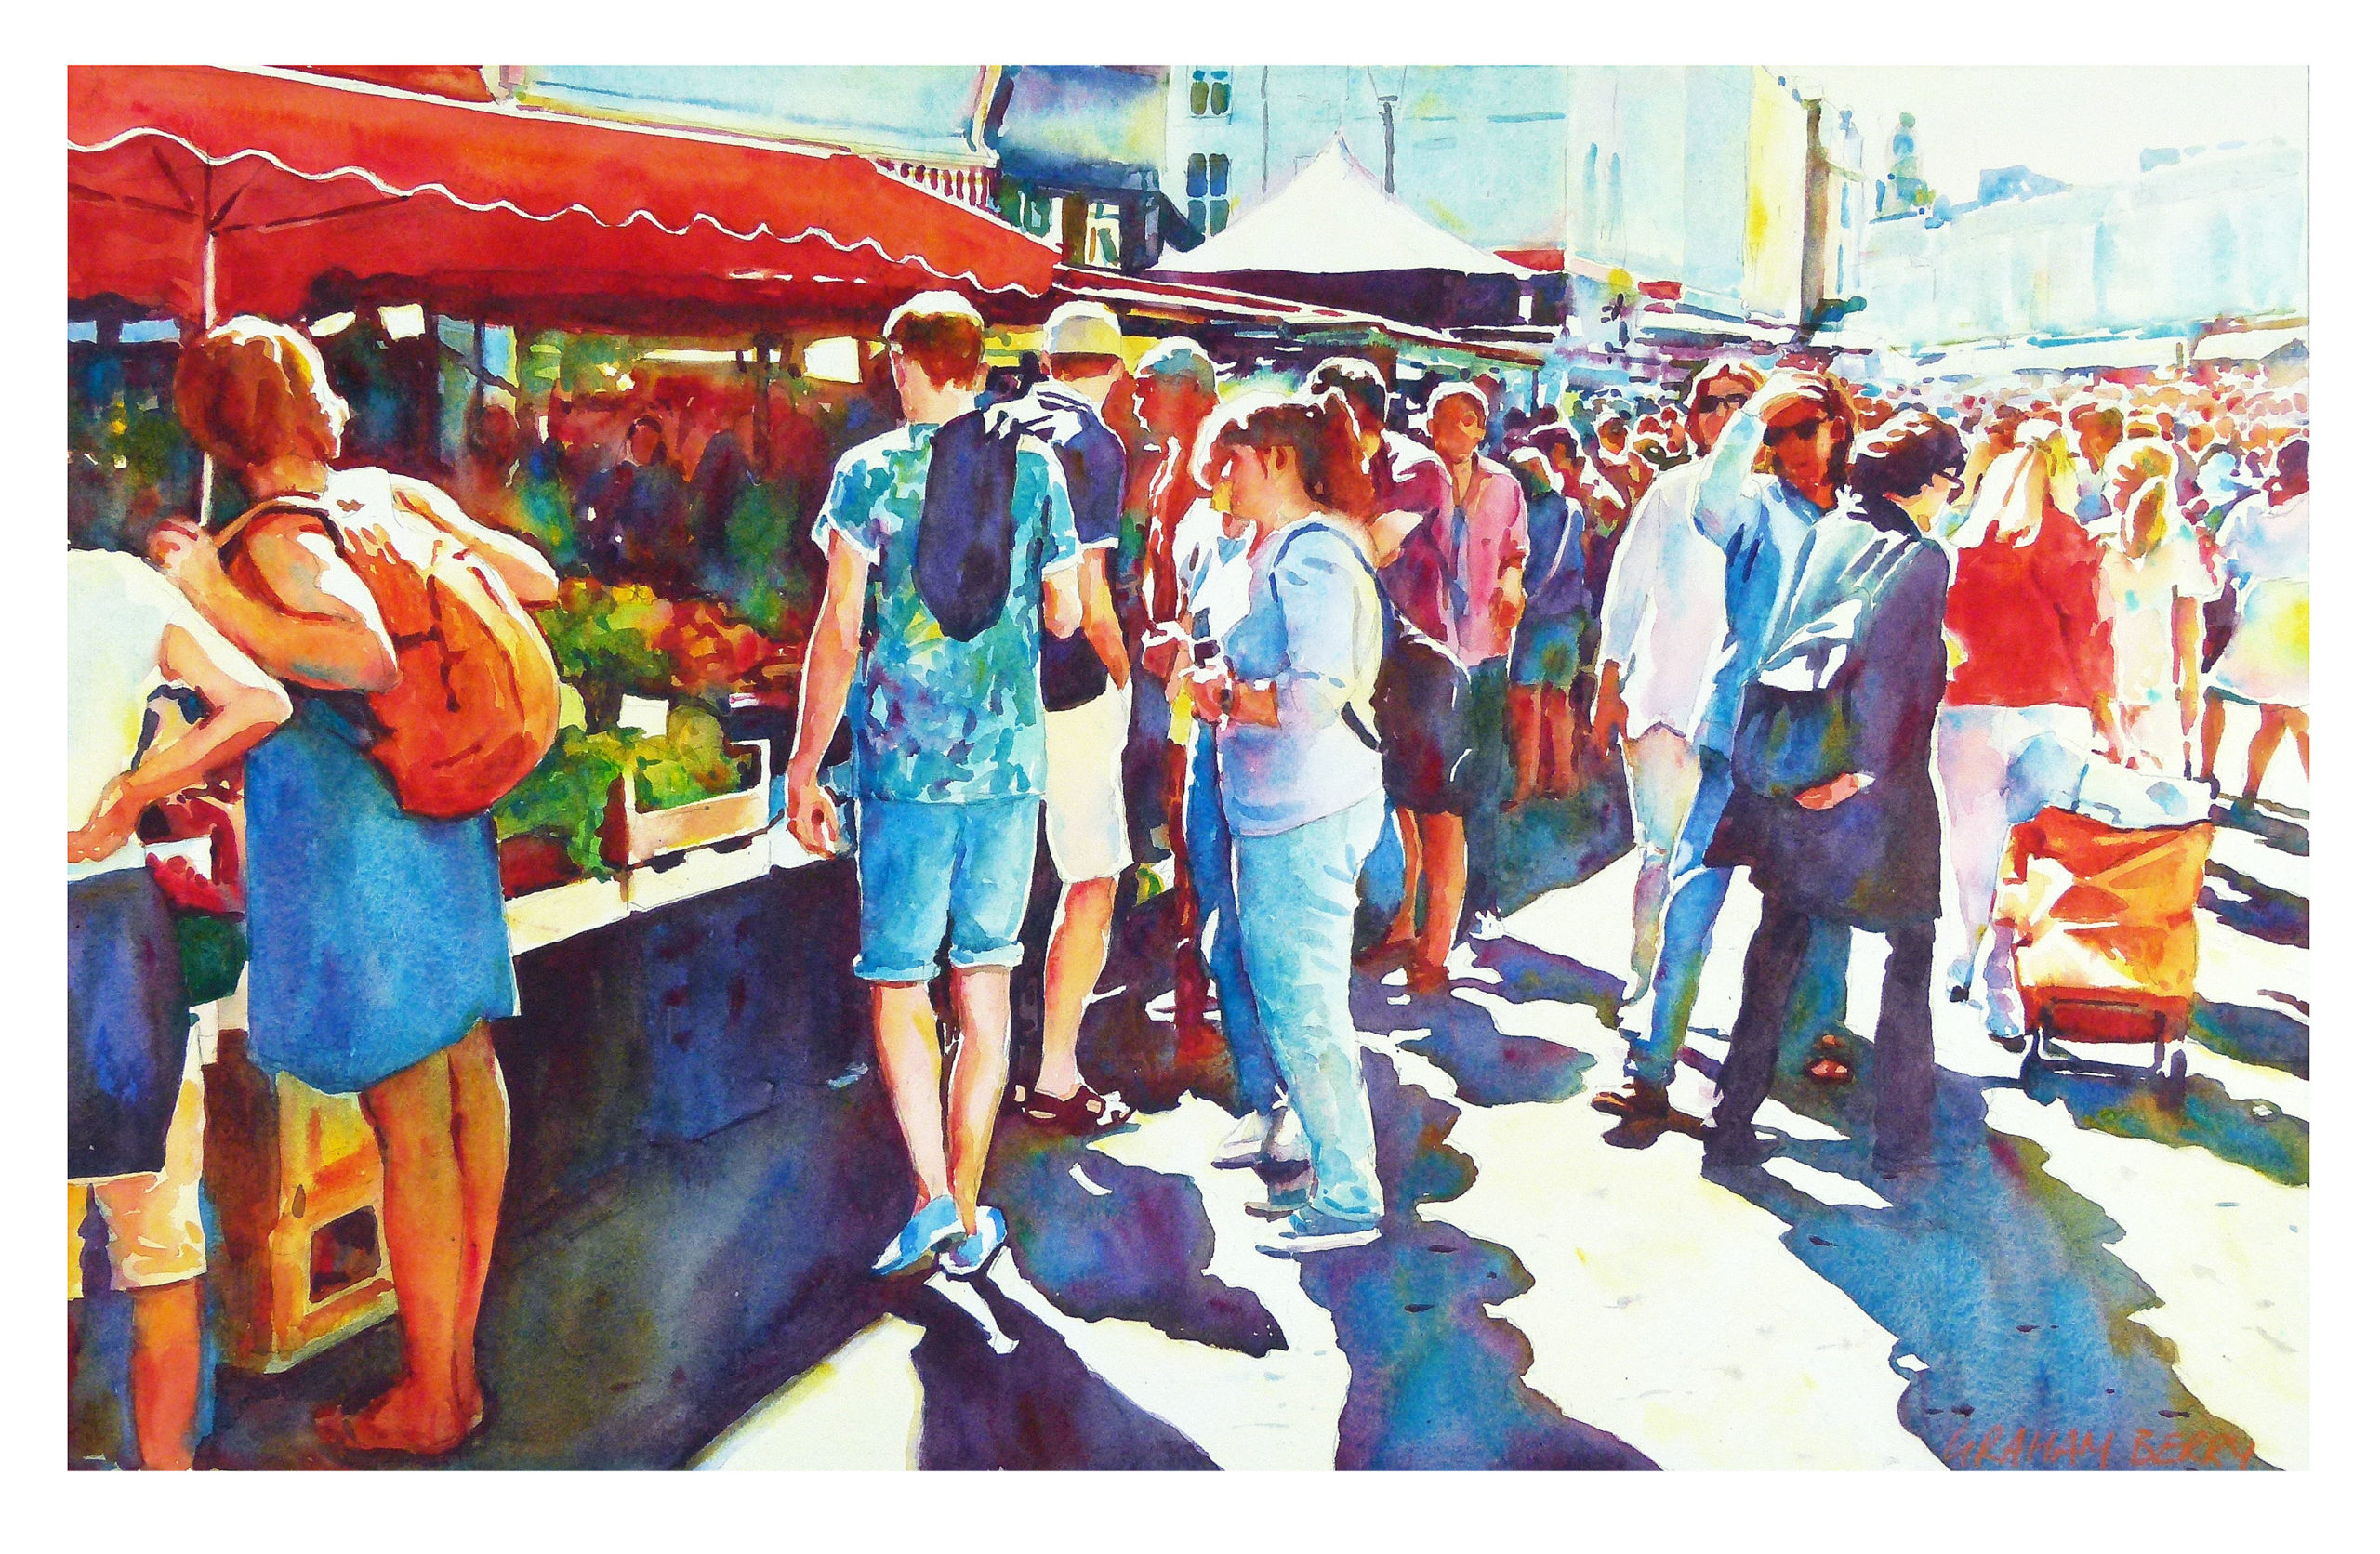 watercolor painting of multiple figures